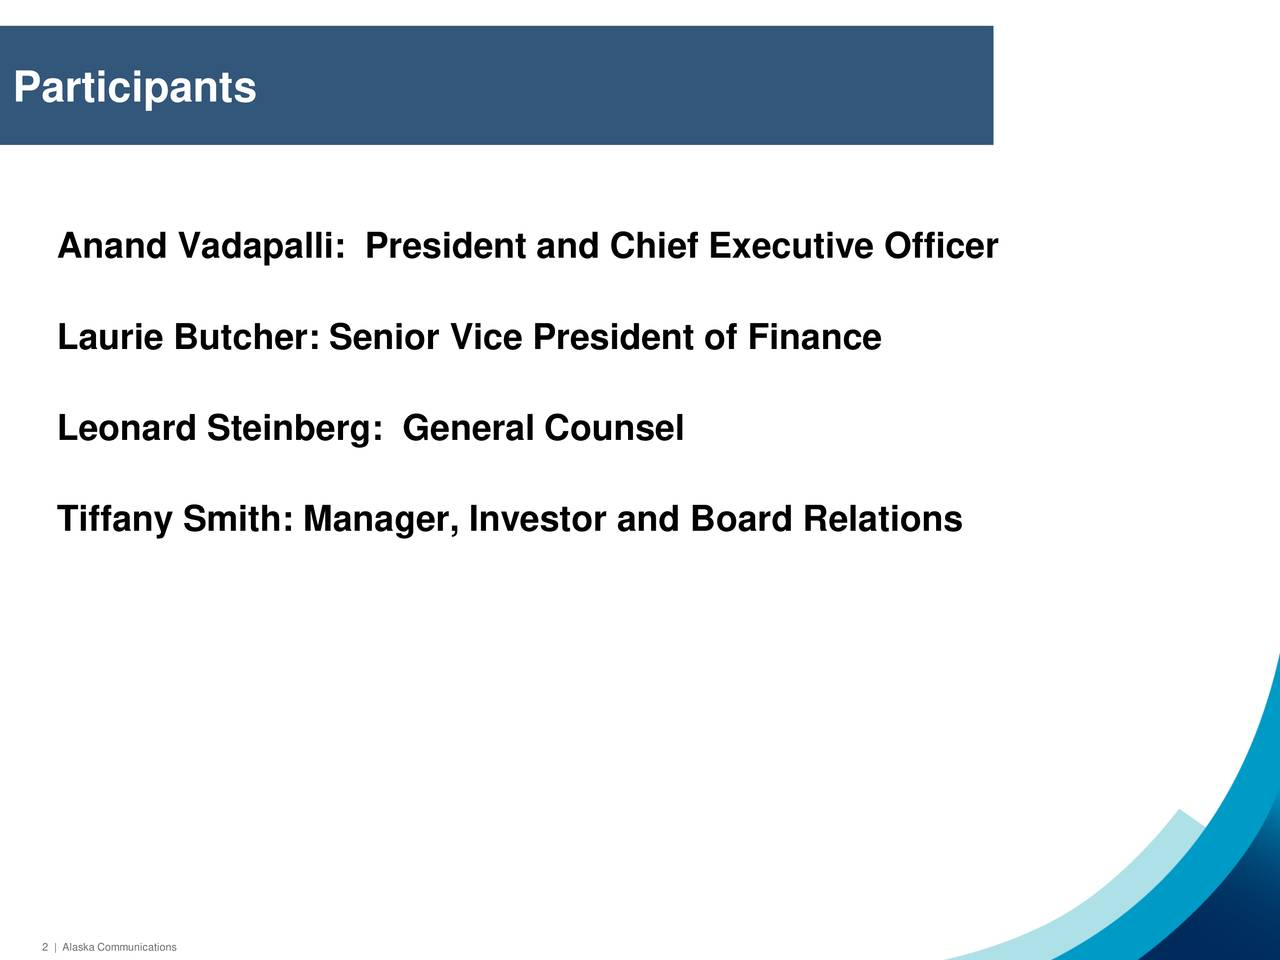 Anand Vadapalli: President and Chief Executive Officer Laurie Butcher: Senior Vice President of Finance Leonard Steinberg: General Counsel Tiffany Smith: Manager, Investor and Board Relations